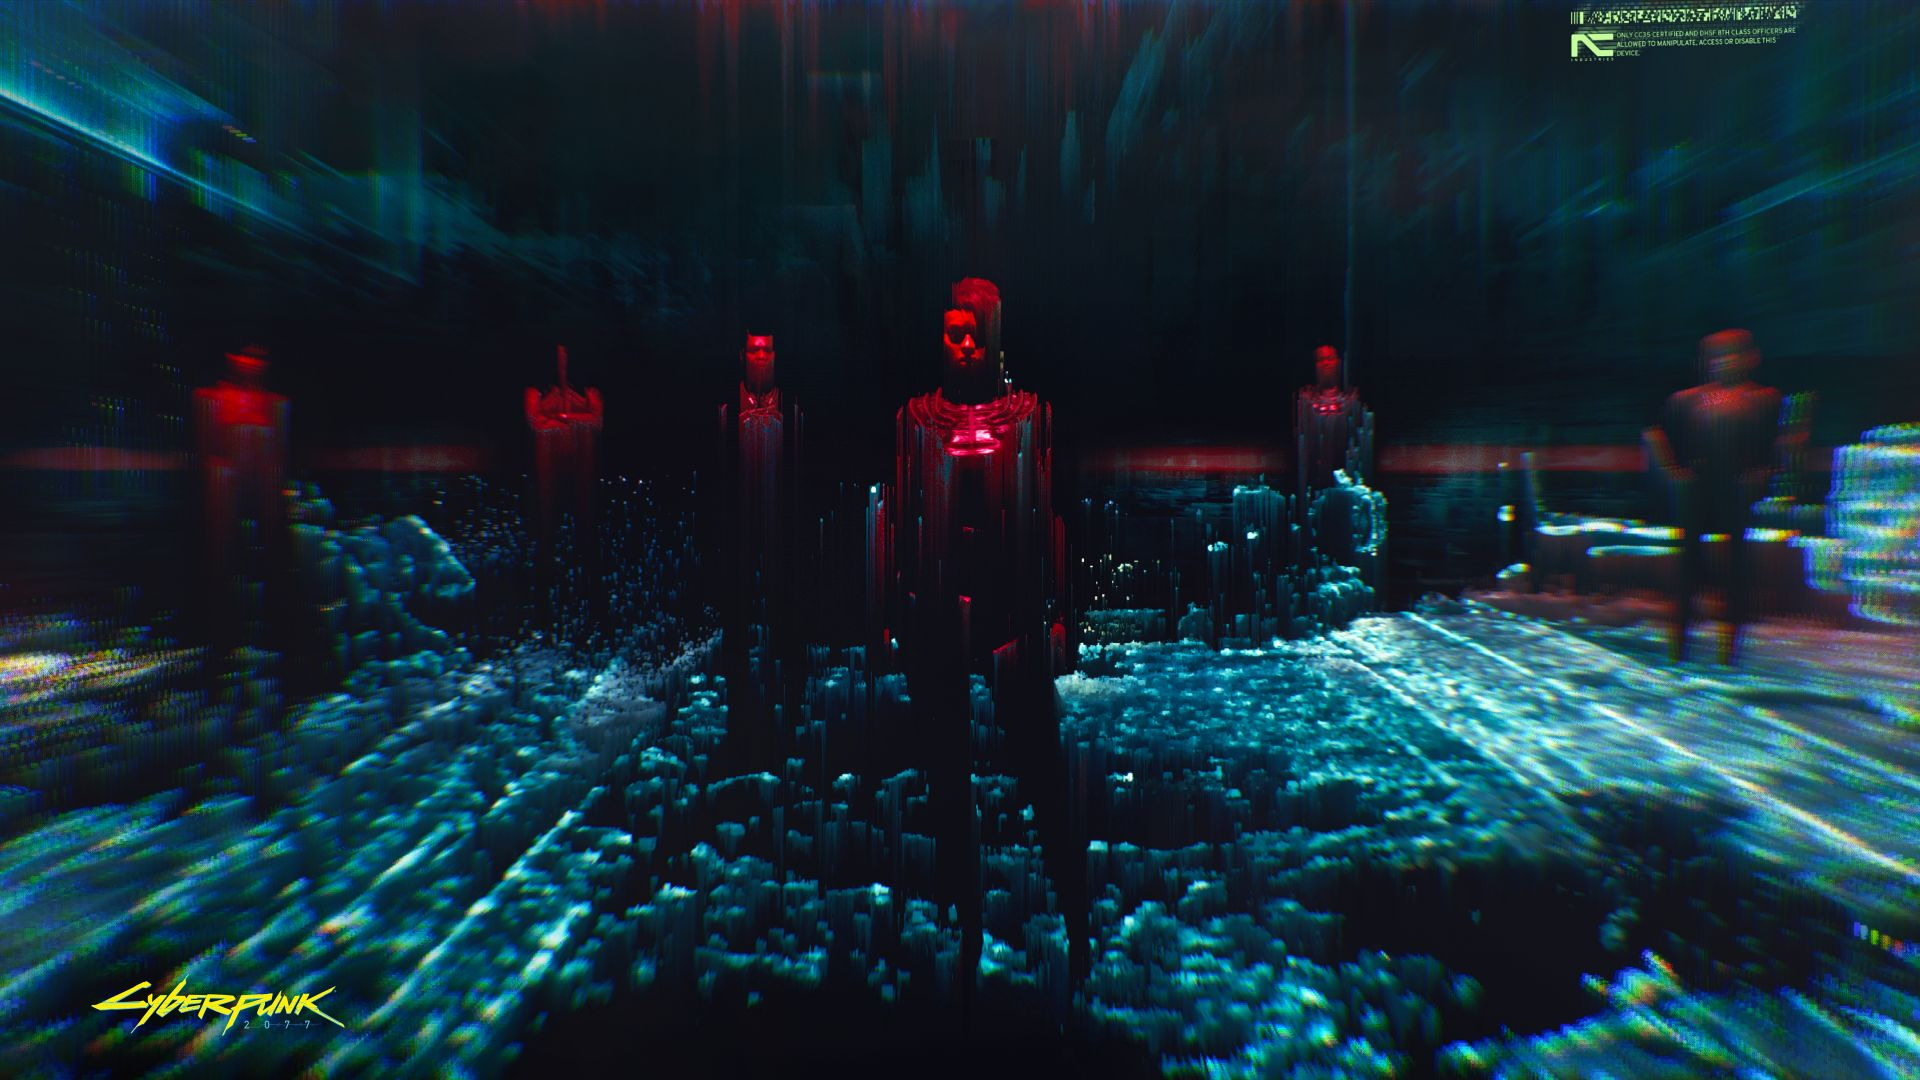 Cyberpunk2077-Really_love_what_you_did_with_the_place-RGB-en.jpg